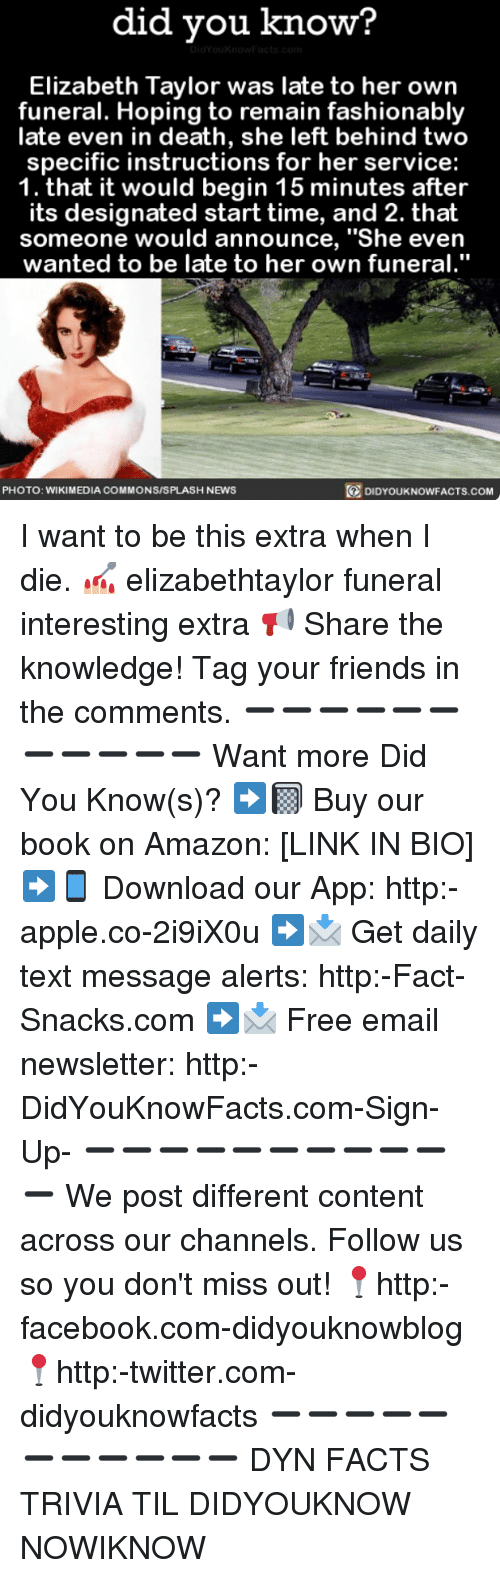 """Amazon, Apple, and Books: did you know?  Elizabeth Taylor was late to her own  funeral. Hoping to remain fashionably  late even in death, she left behind two  specific instructions for her service:  1. that it would begin 15 minutes after  its designated start time, and 2. that  someone would announce, """"She even  wanted to be late to her own funeral.""""  PHOTO: WIKIMEDIA COMMONSISPLASH NEWS  DIDYOUKNOWFACTS.COM I want to be this extra when I die. 💅🏼 elizabethtaylor funeral interesting extra 📢 Share the knowledge! Tag your friends in the comments. ➖➖➖➖➖➖➖➖➖➖➖ Want more Did You Know(s)? ➡📓 Buy our book on Amazon: [LINK IN BIO] ➡📱 Download our App: http:-apple.co-2i9iX0u ➡📩 Get daily text message alerts: http:-Fact-Snacks.com ➡📩 Free email newsletter: http:-DidYouKnowFacts.com-Sign-Up- ➖➖➖➖➖➖➖➖➖➖➖ We post different content across our channels. Follow us so you don't miss out! 📍http:-facebook.com-didyouknowblog 📍http:-twitter.com-didyouknowfacts ➖➖➖➖➖➖➖➖➖➖➖ DYN FACTS TRIVIA TIL DIDYOUKNOW NOWIKNOW"""